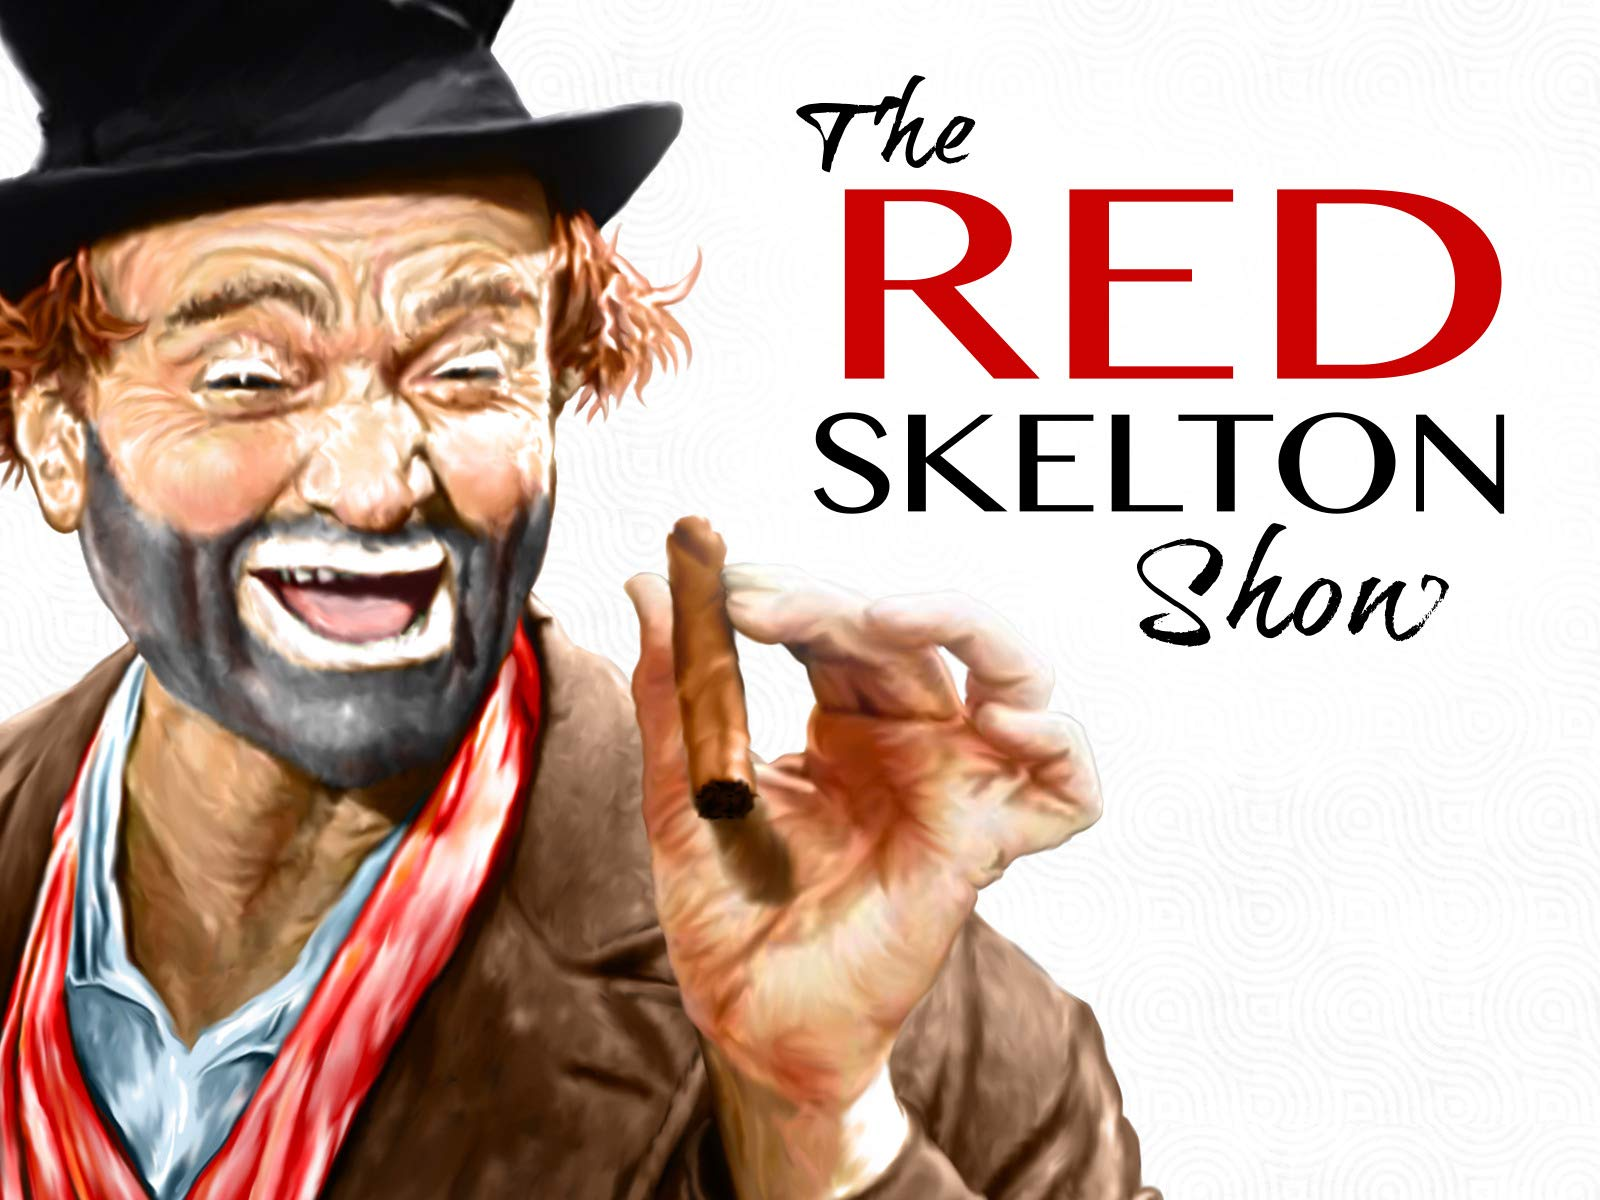 The Red Skelton Show season 1